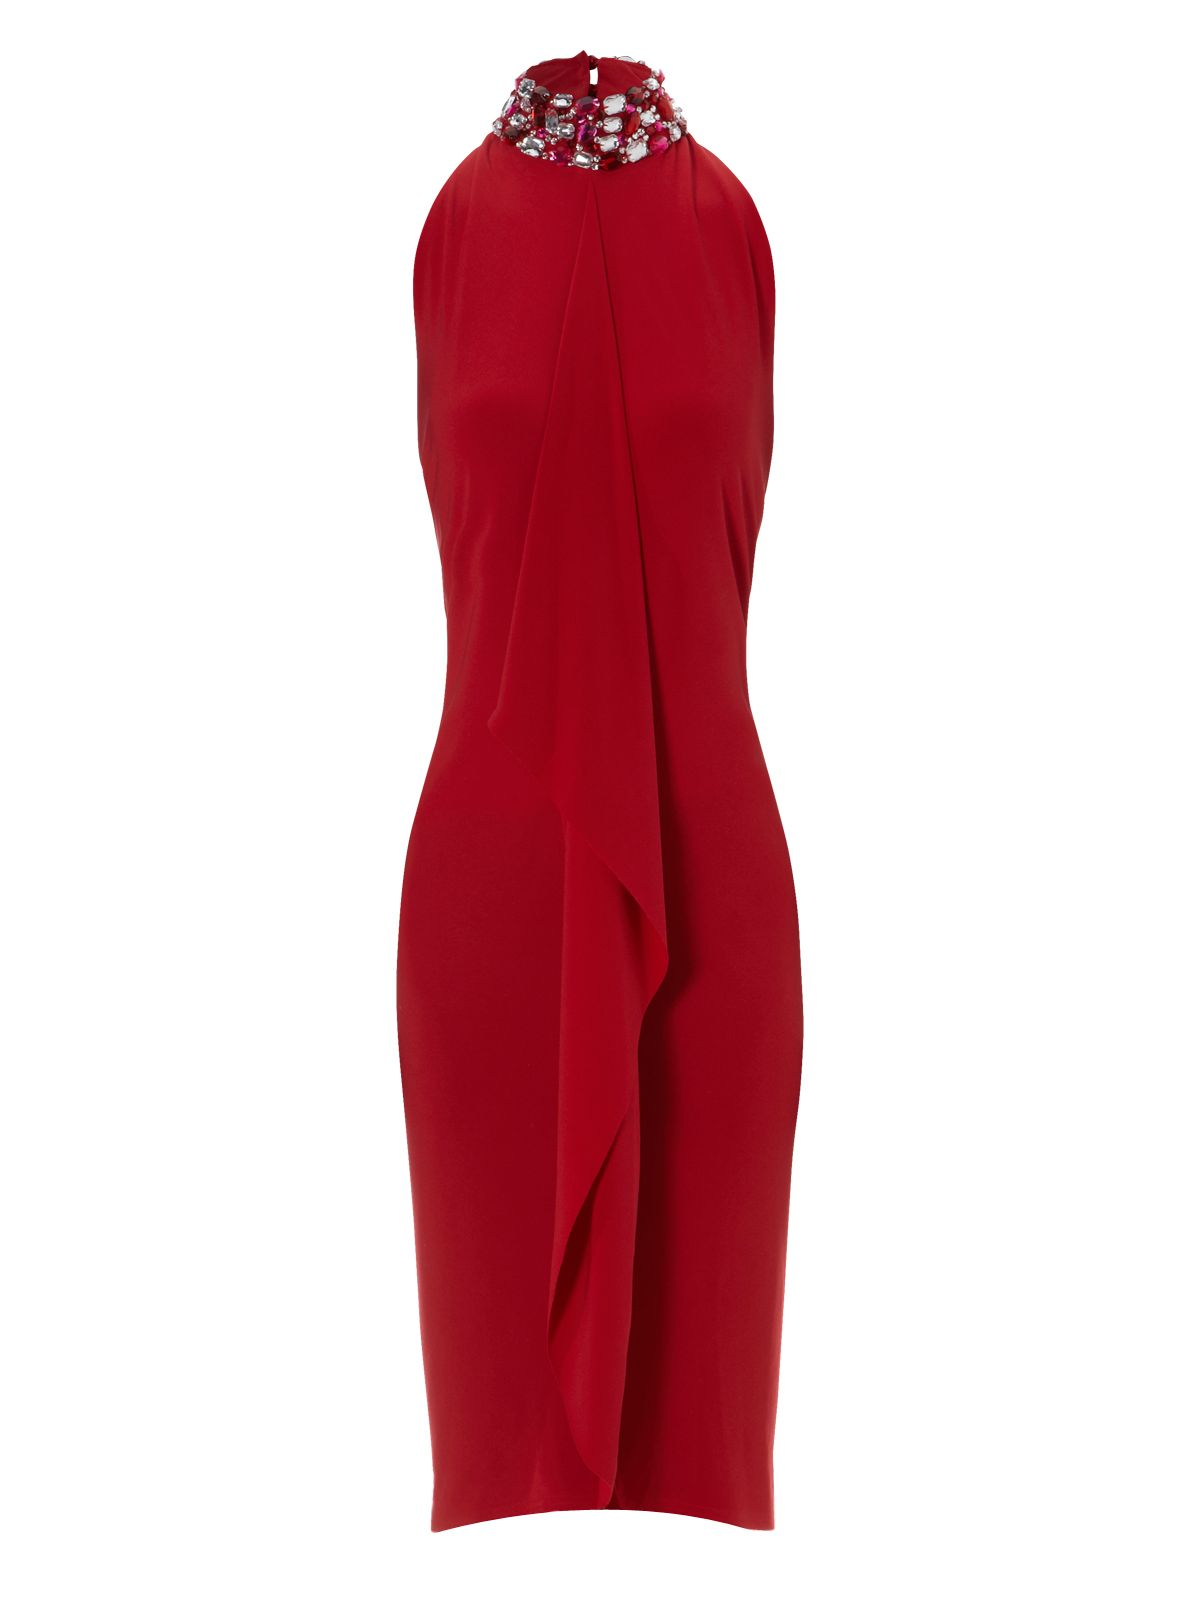 Jane norman Jewel Neck Backless Dress in Red | Lyst